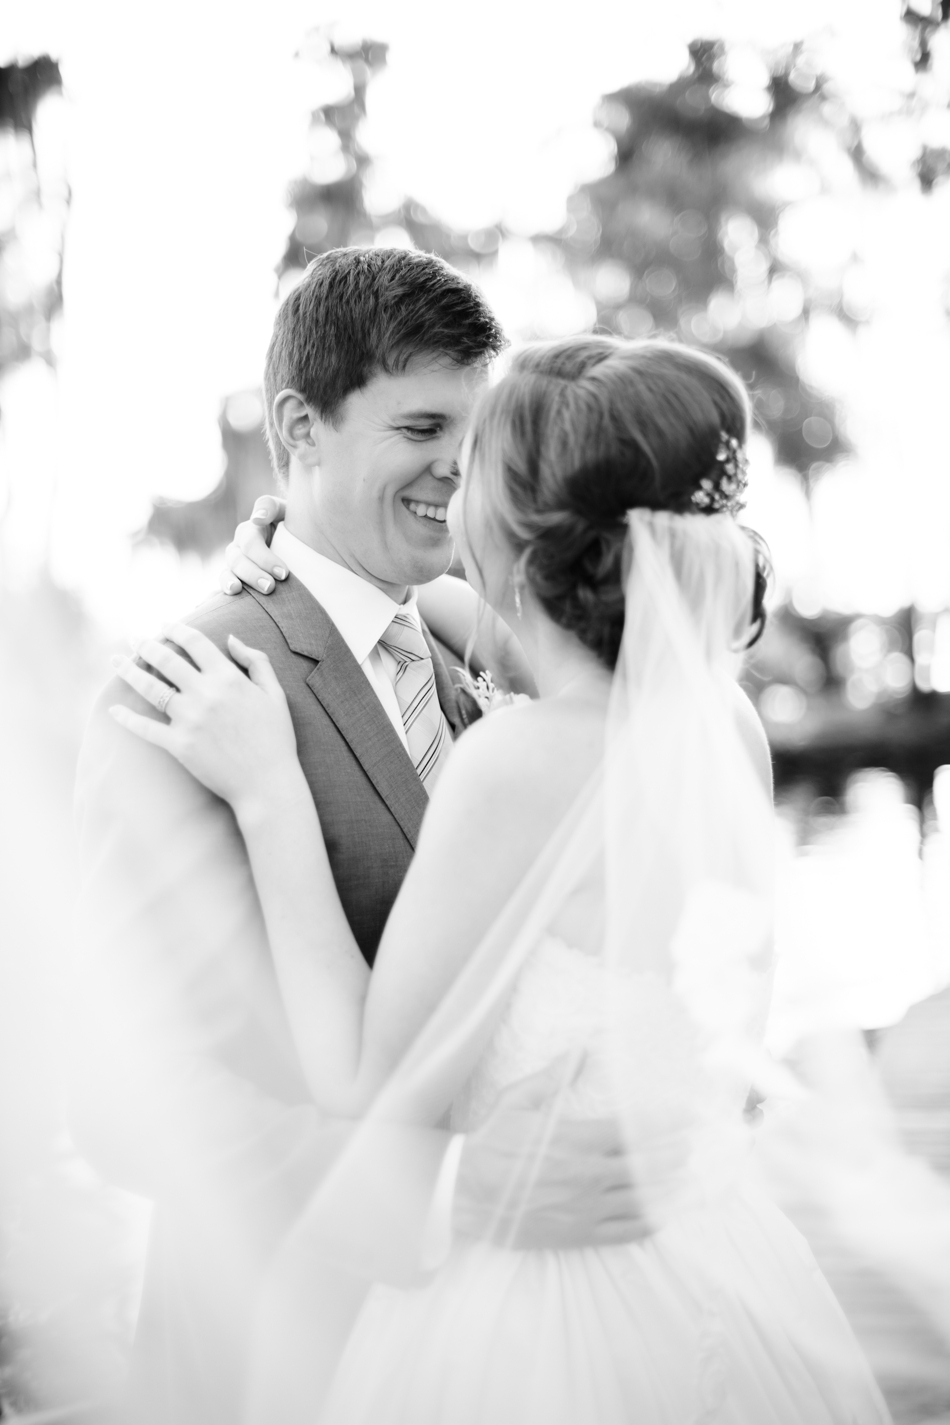 Black and white wedding day pictures